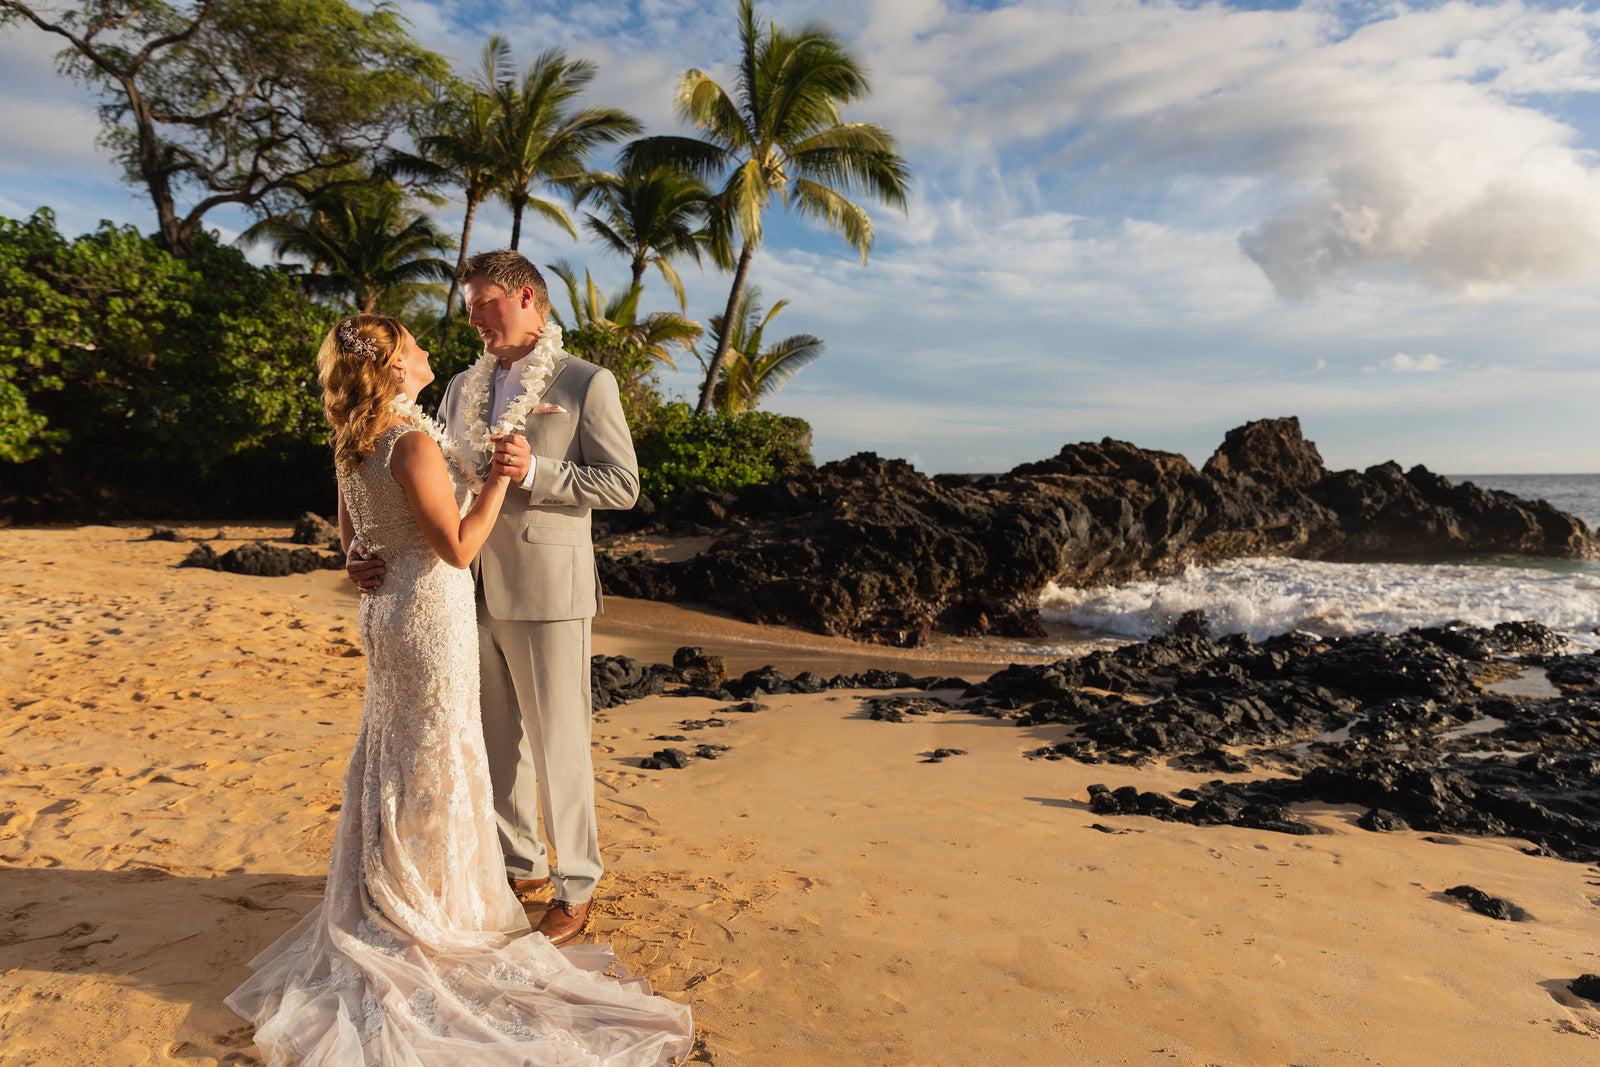 [Maui Elopement & Maui Wedding Photographer Online]-Maui Wedding Photography & Planning Studio, A Paradise Dream Wedding